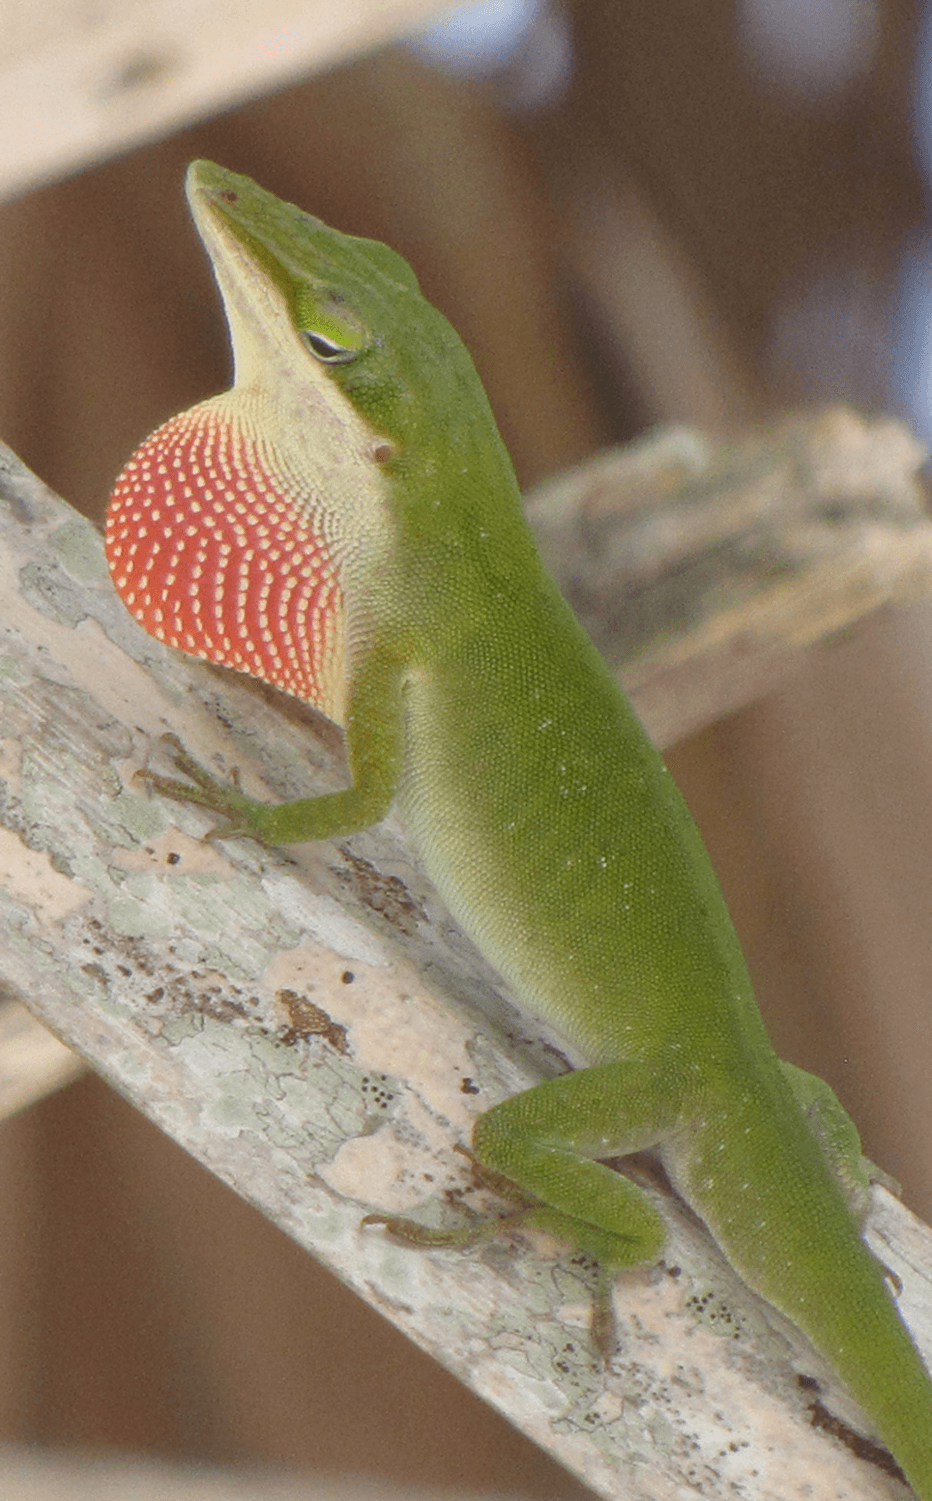 Invasive Species Trigger Rapid Evolution For Lizards In